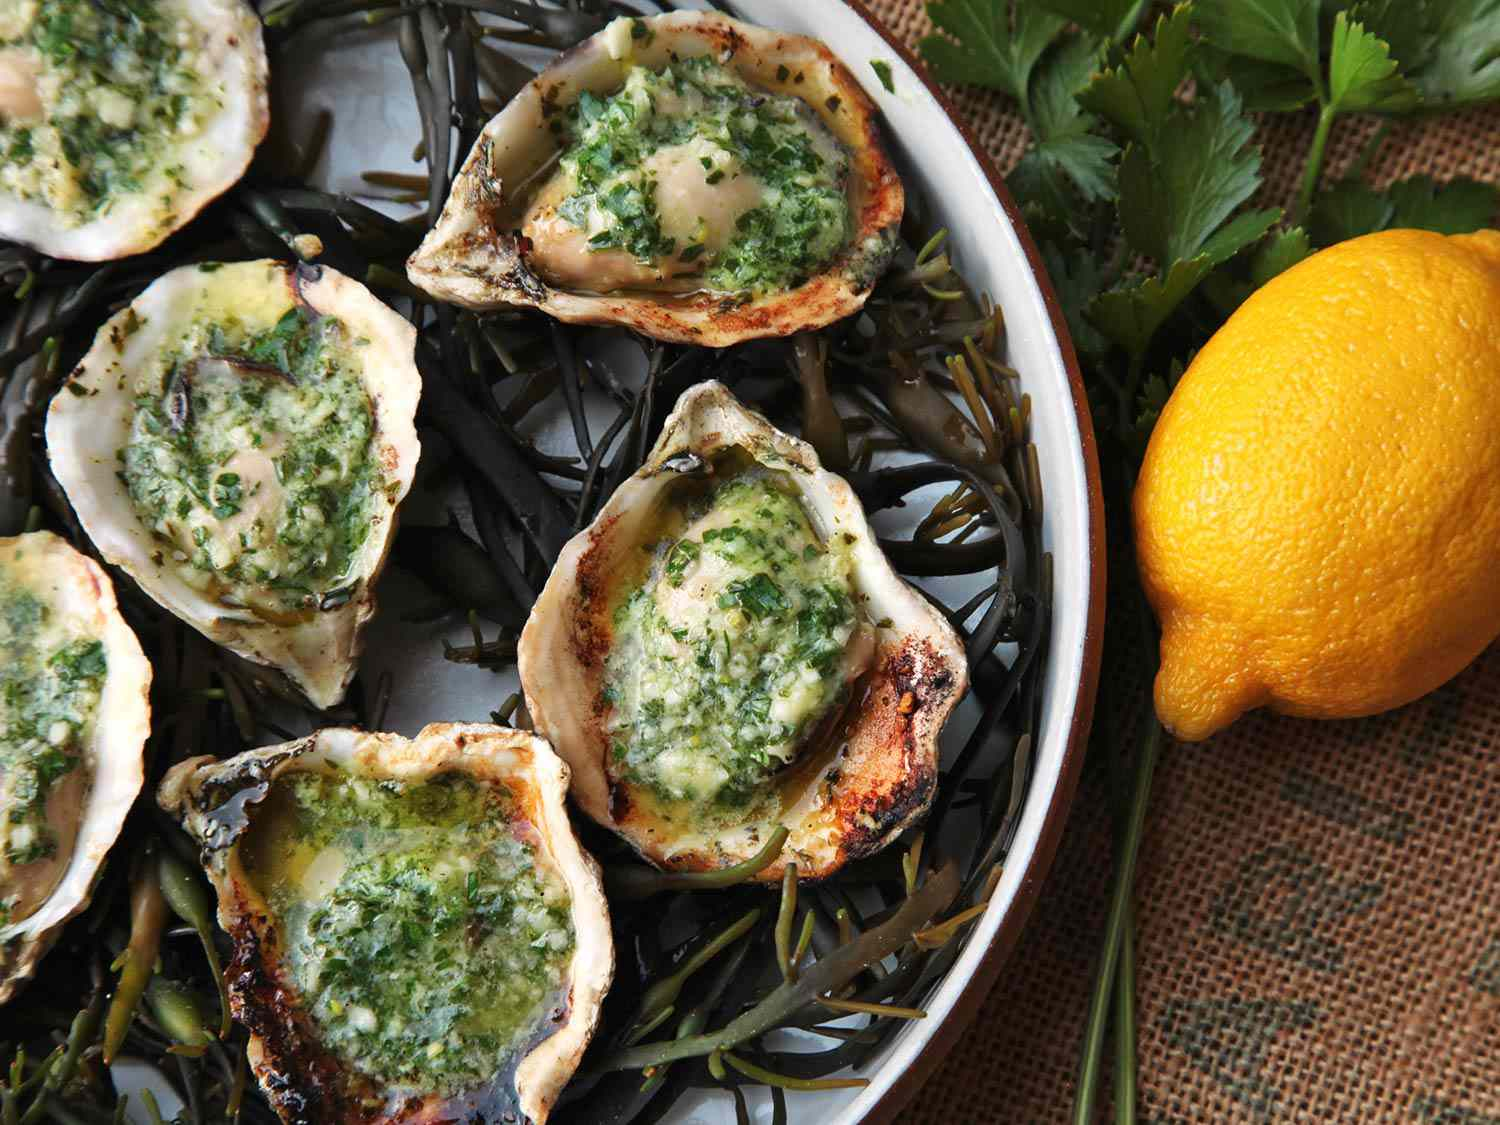 20160801-grilled-oysters-18.jpg